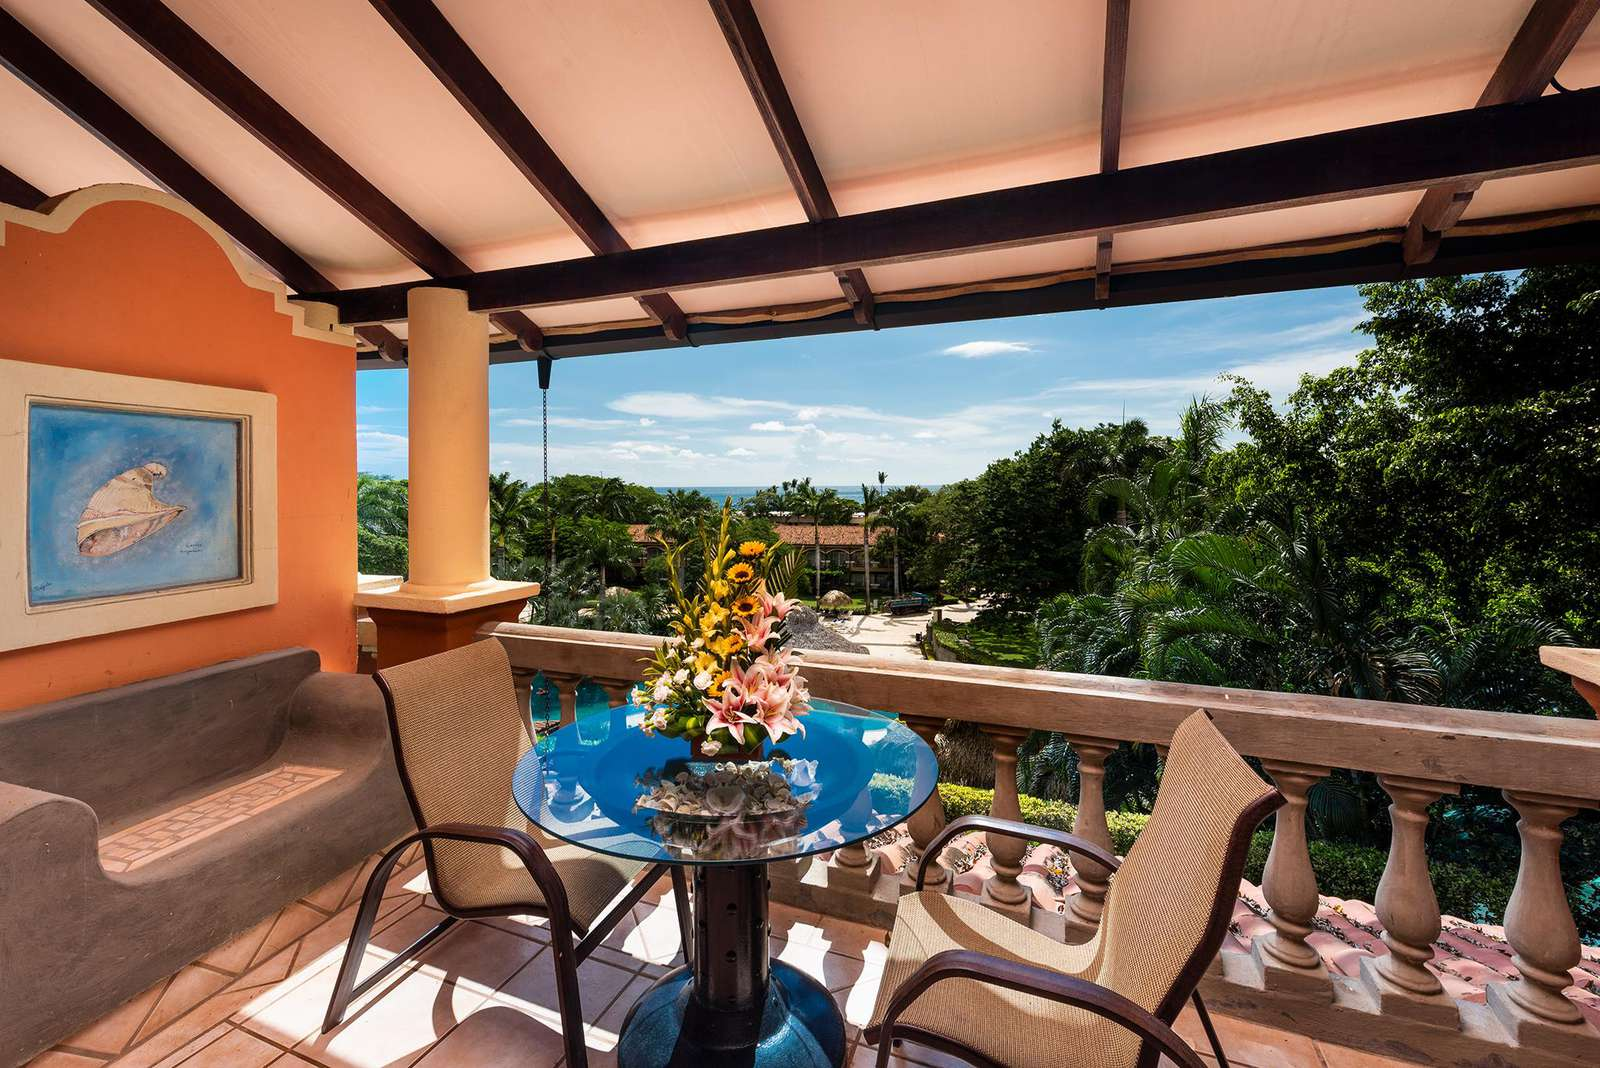 Private balcony area with a view